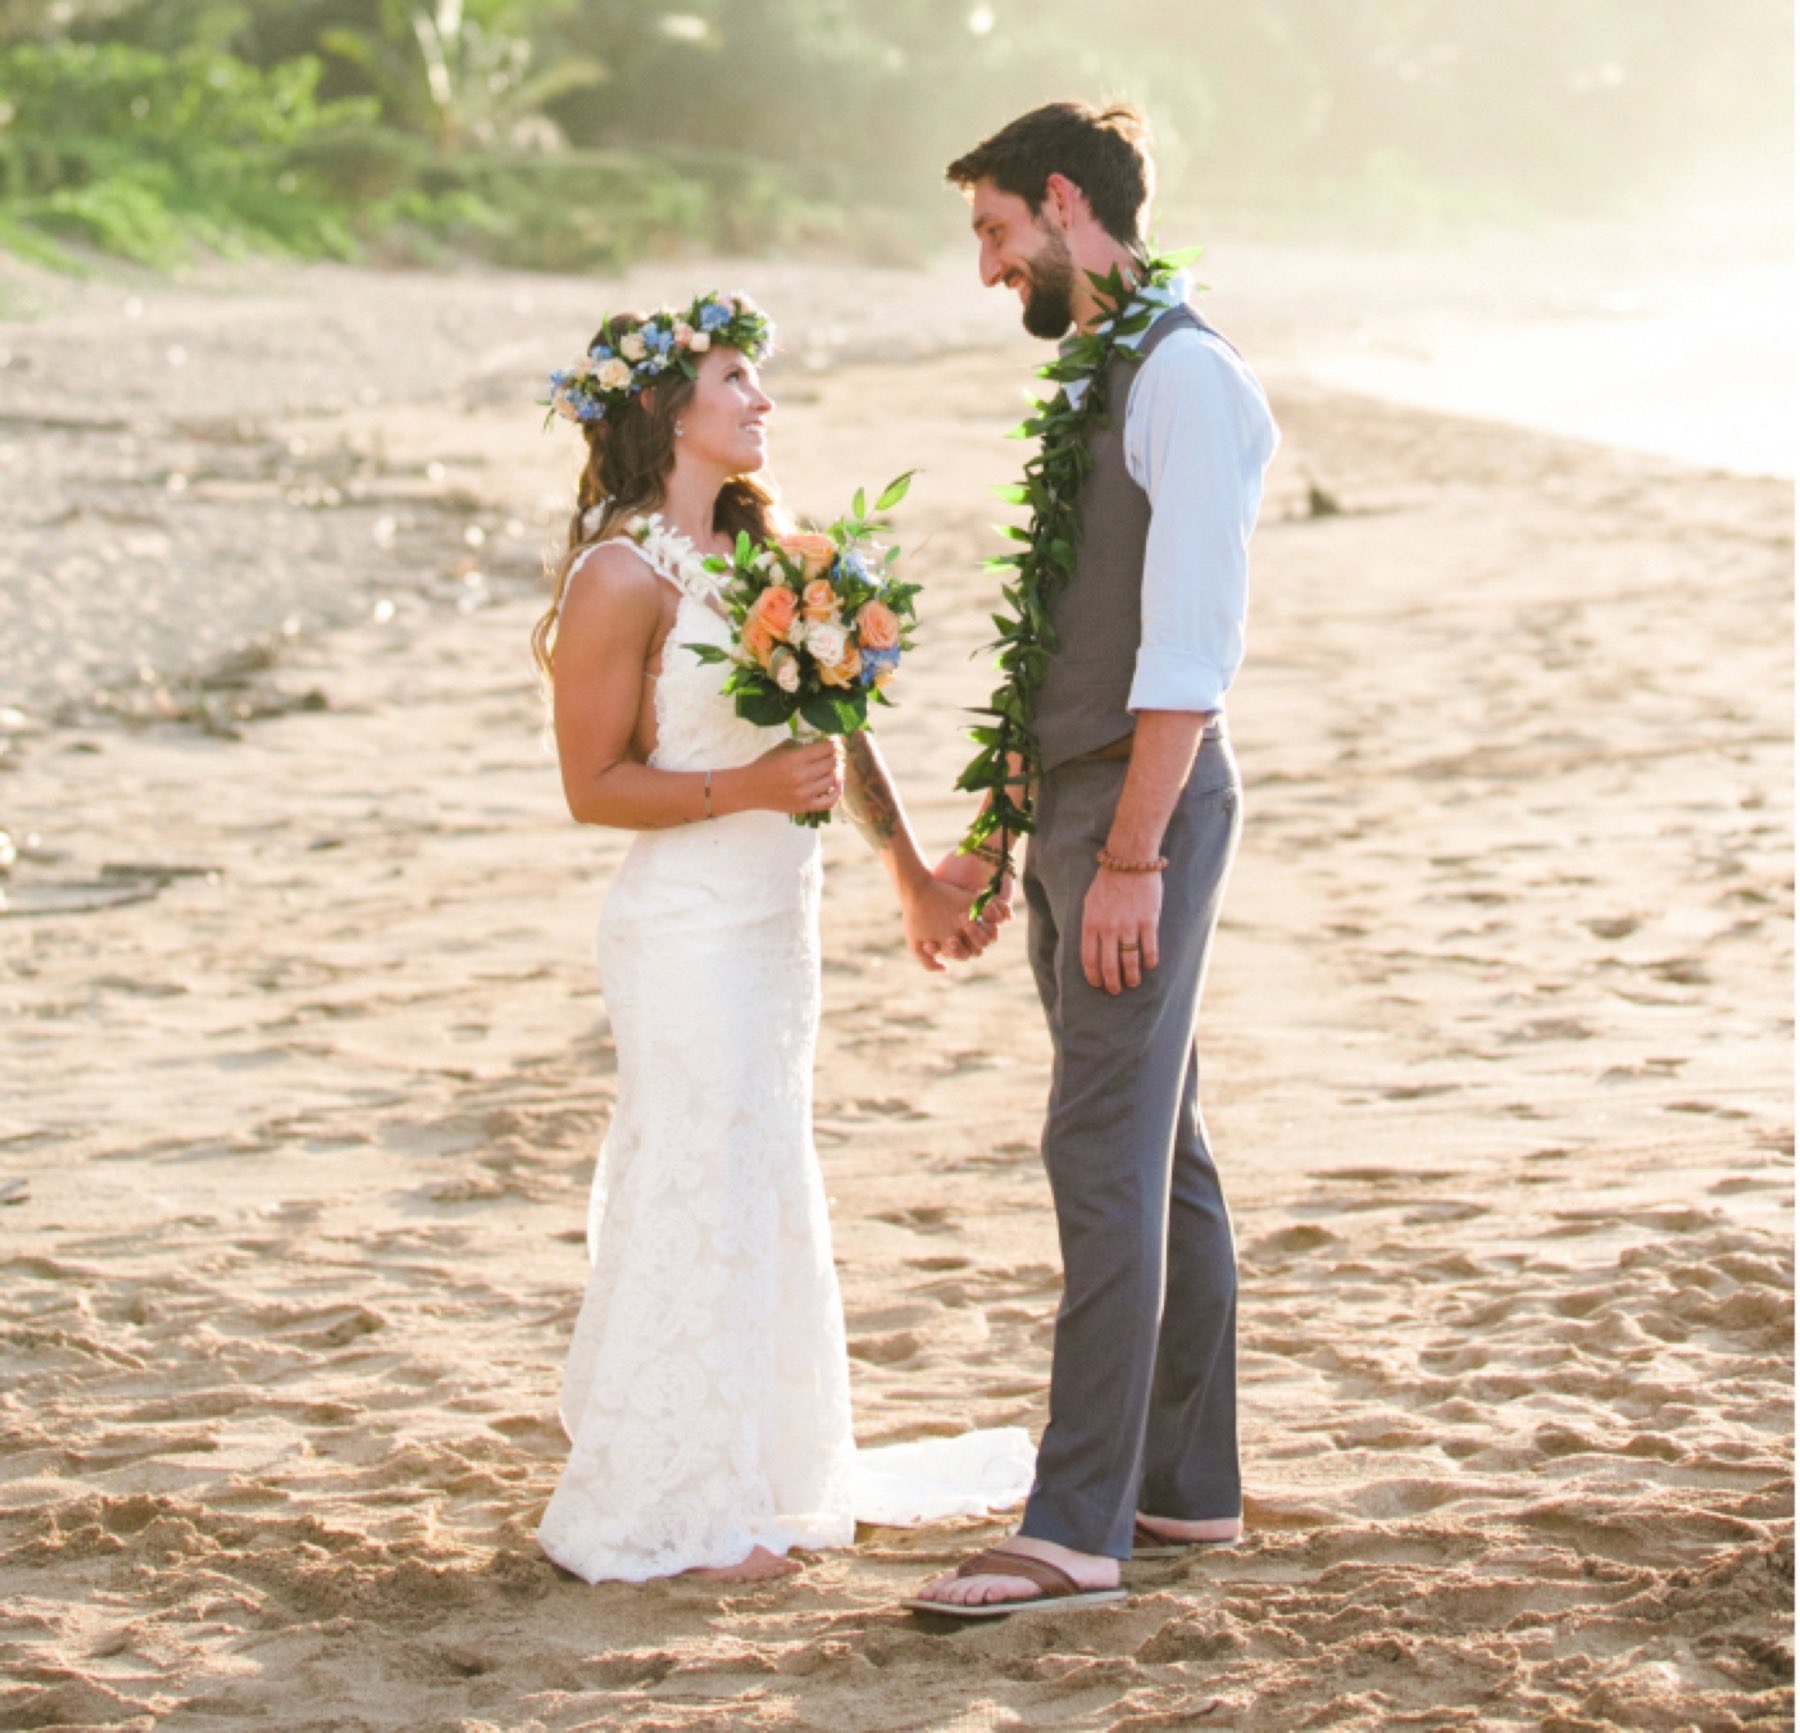 Couple getting married on the beach in Hawaii.